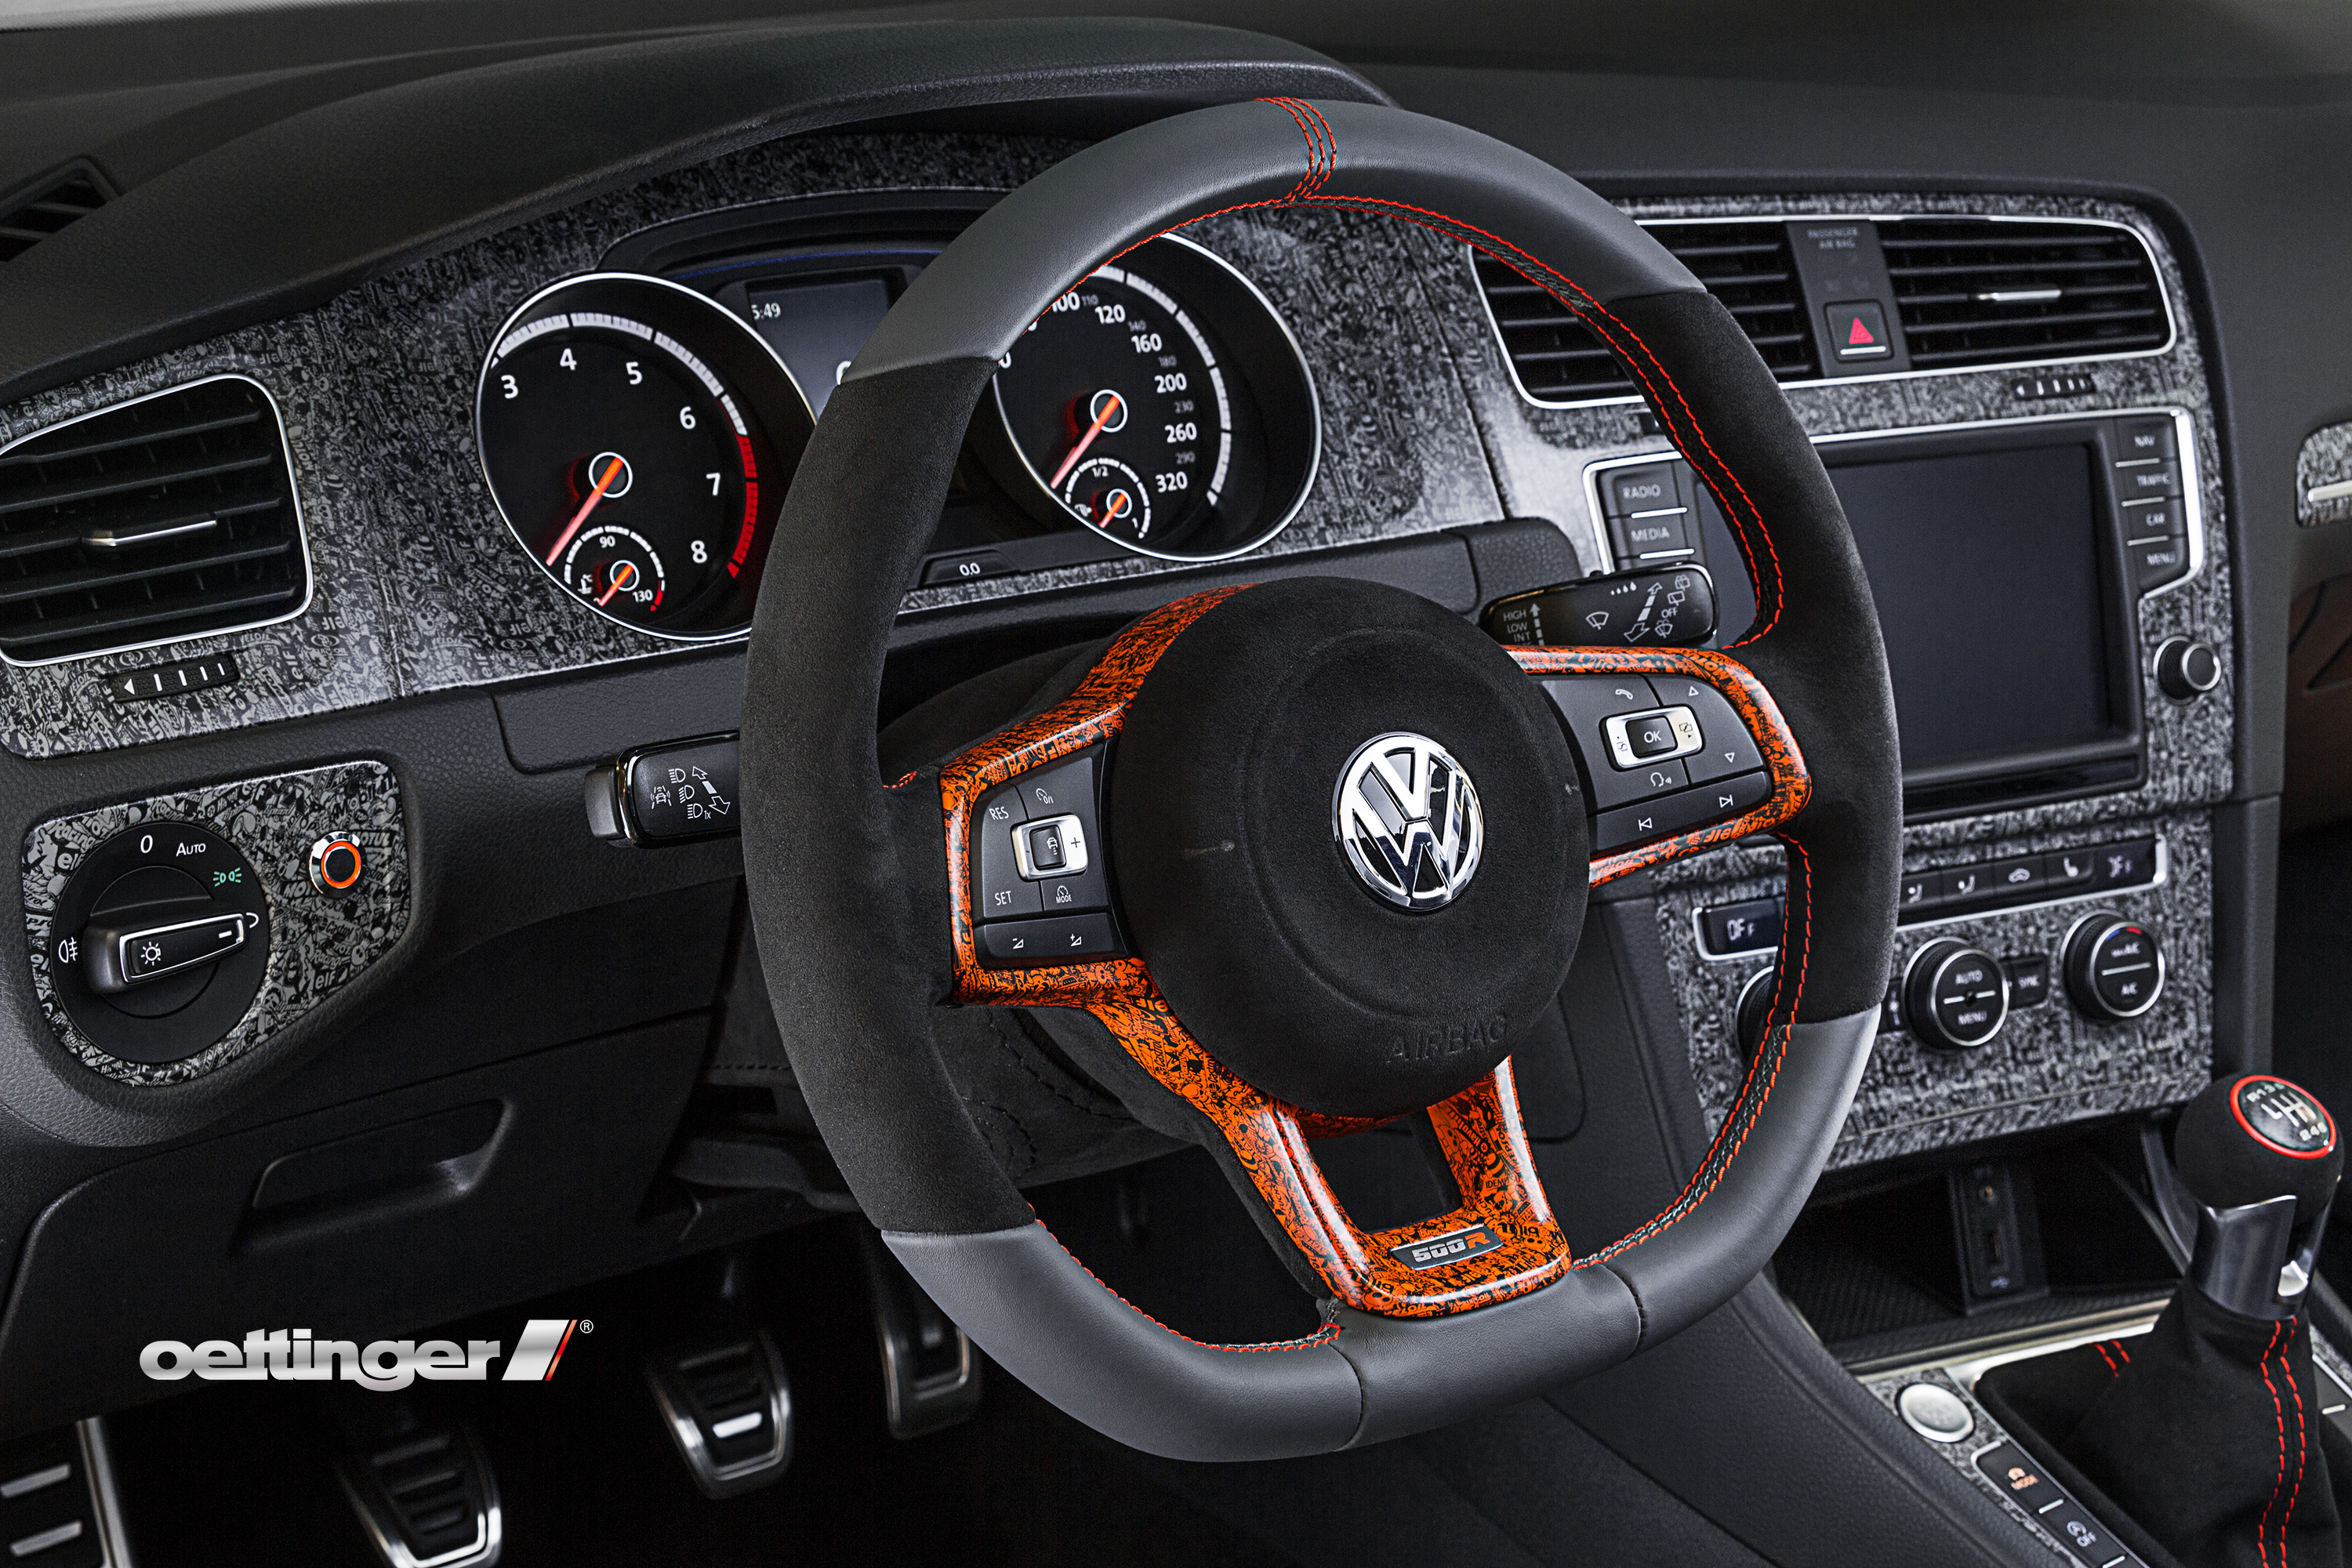 First Class Lever besides C agnolo Freehub Body additionally Volkswagen Golf R Interior in addition Red And Black Kenworth W900 in addition Opel Kadett C. on wheel and axle